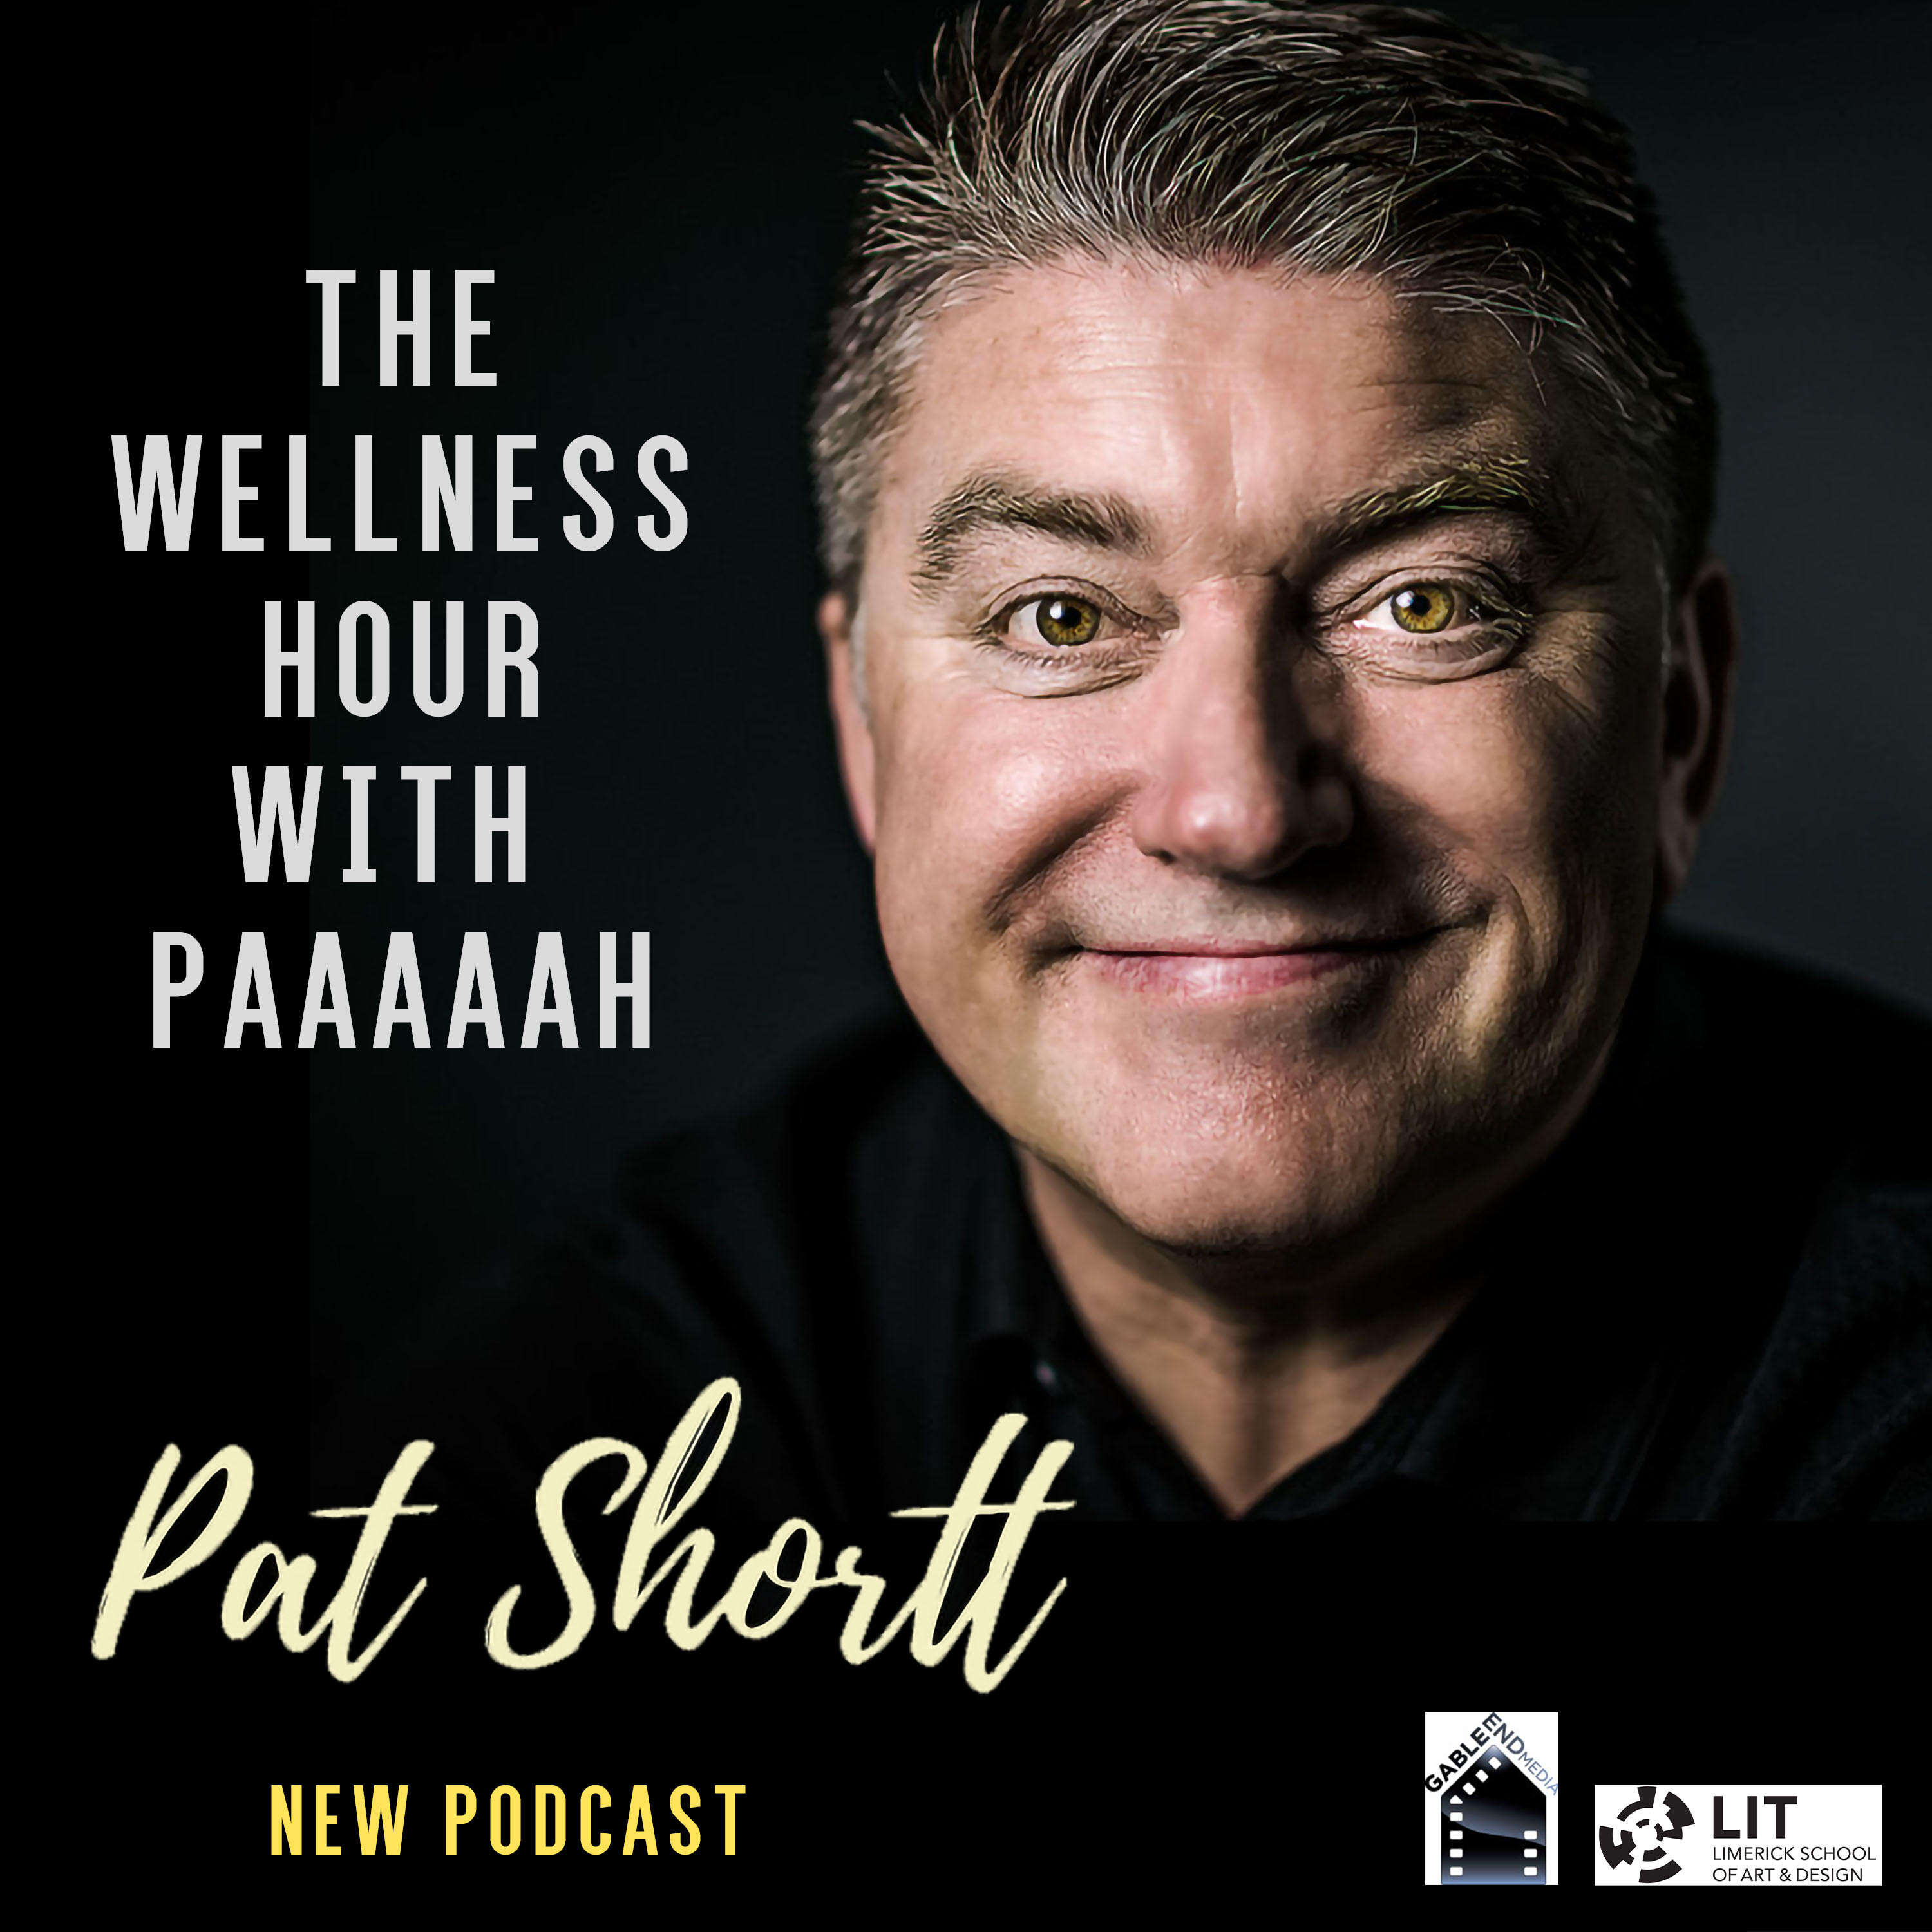 The Wellness Hour with Paaaaah! Ep 5 of 6